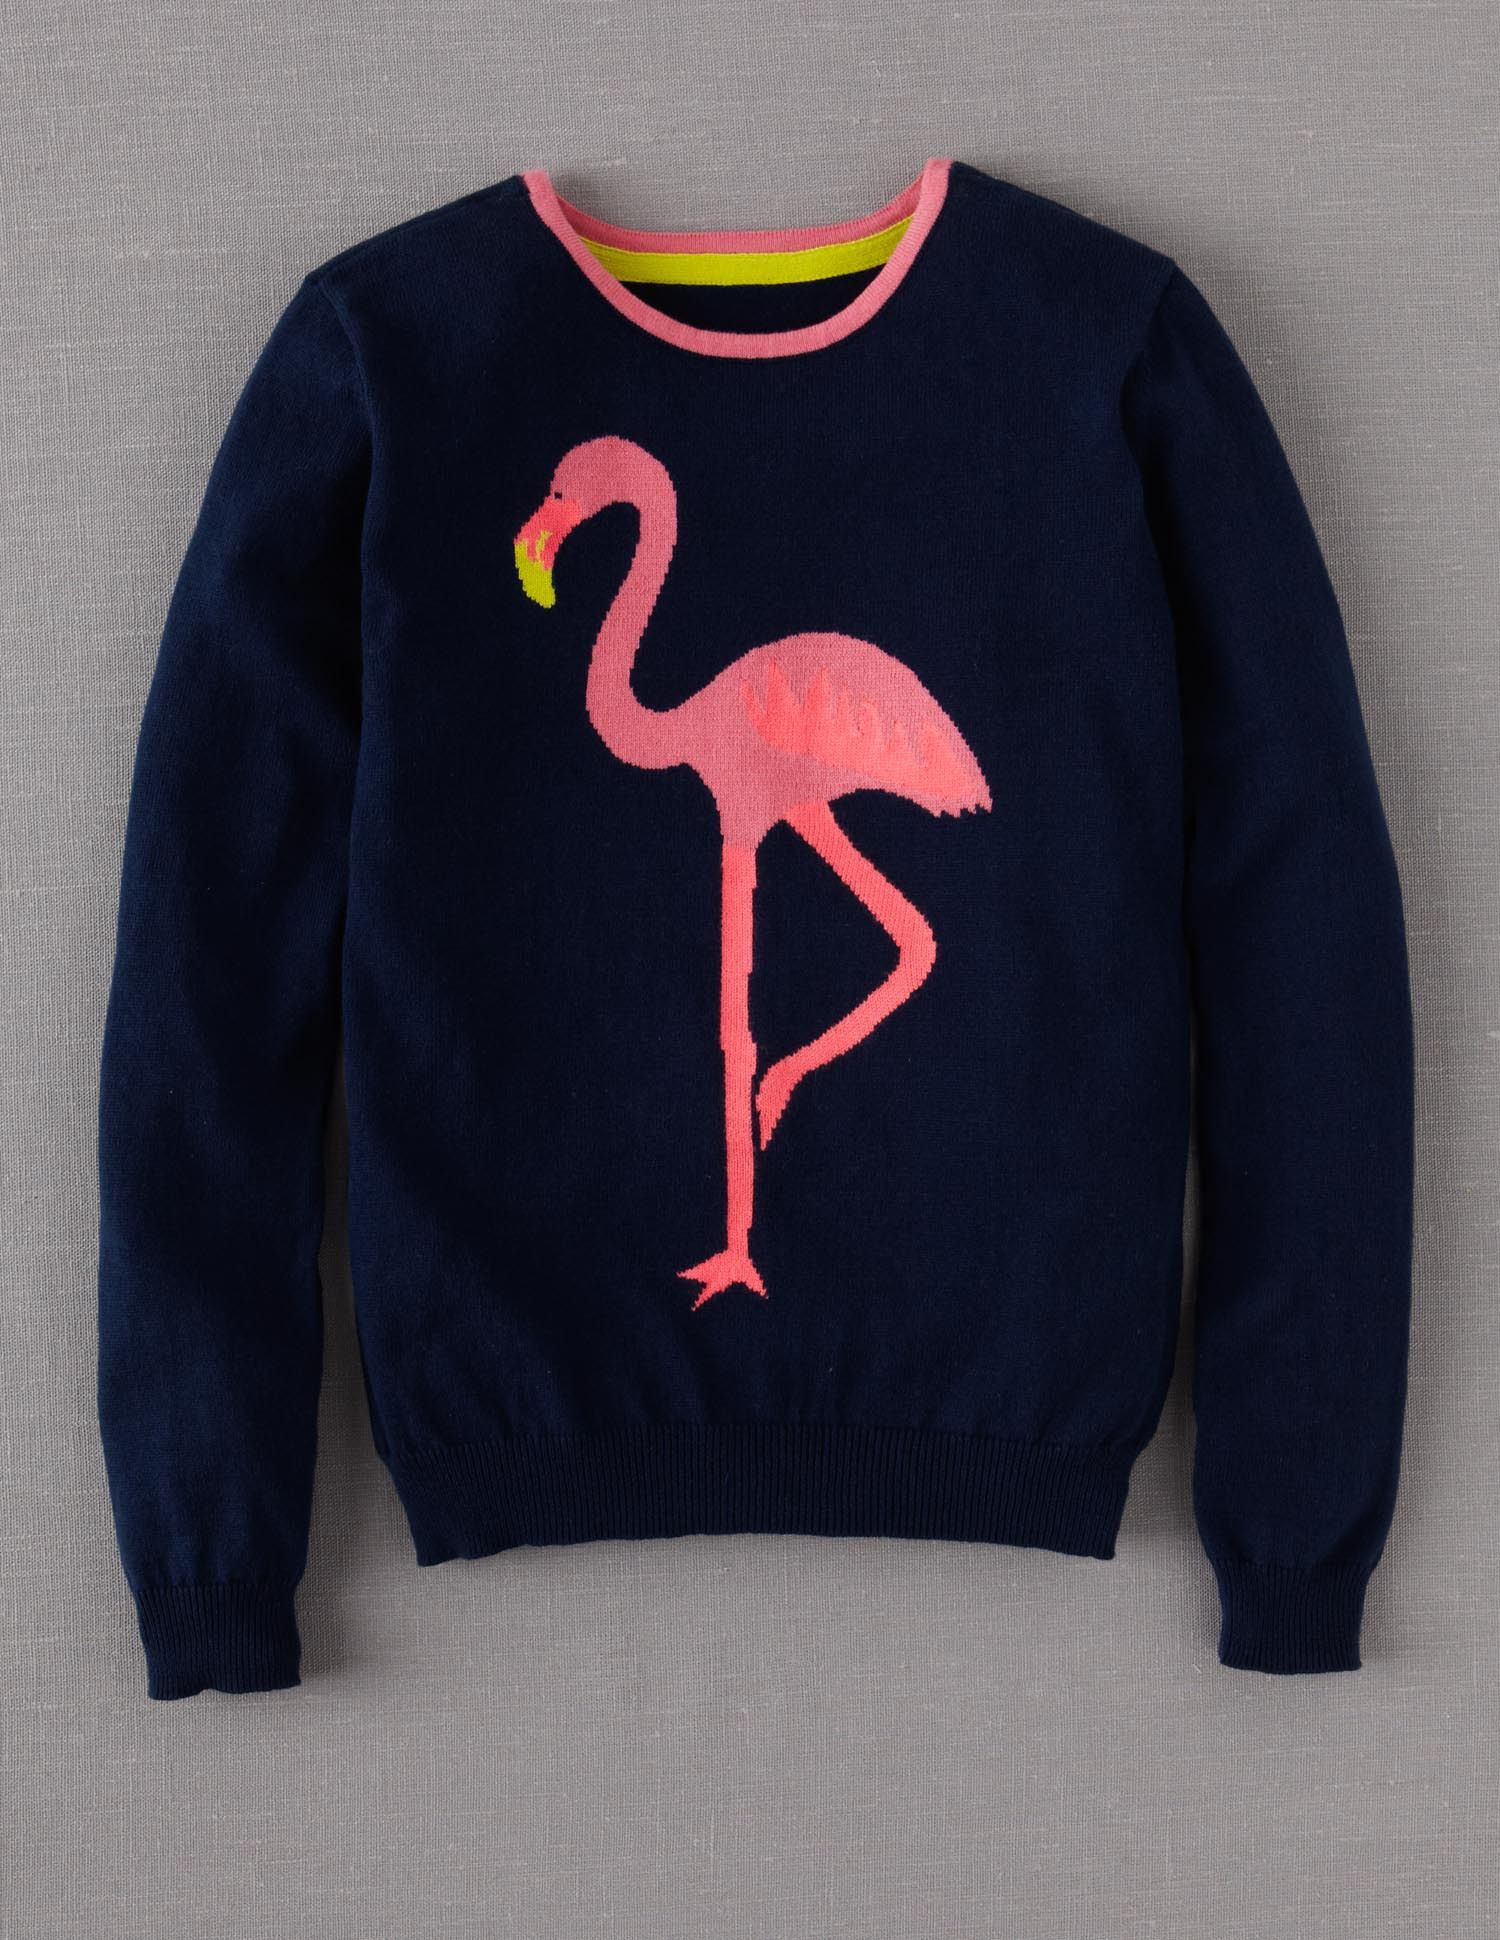 004e2ad409b Boden flamingo sweater. I think I need this for Florida s sake ...